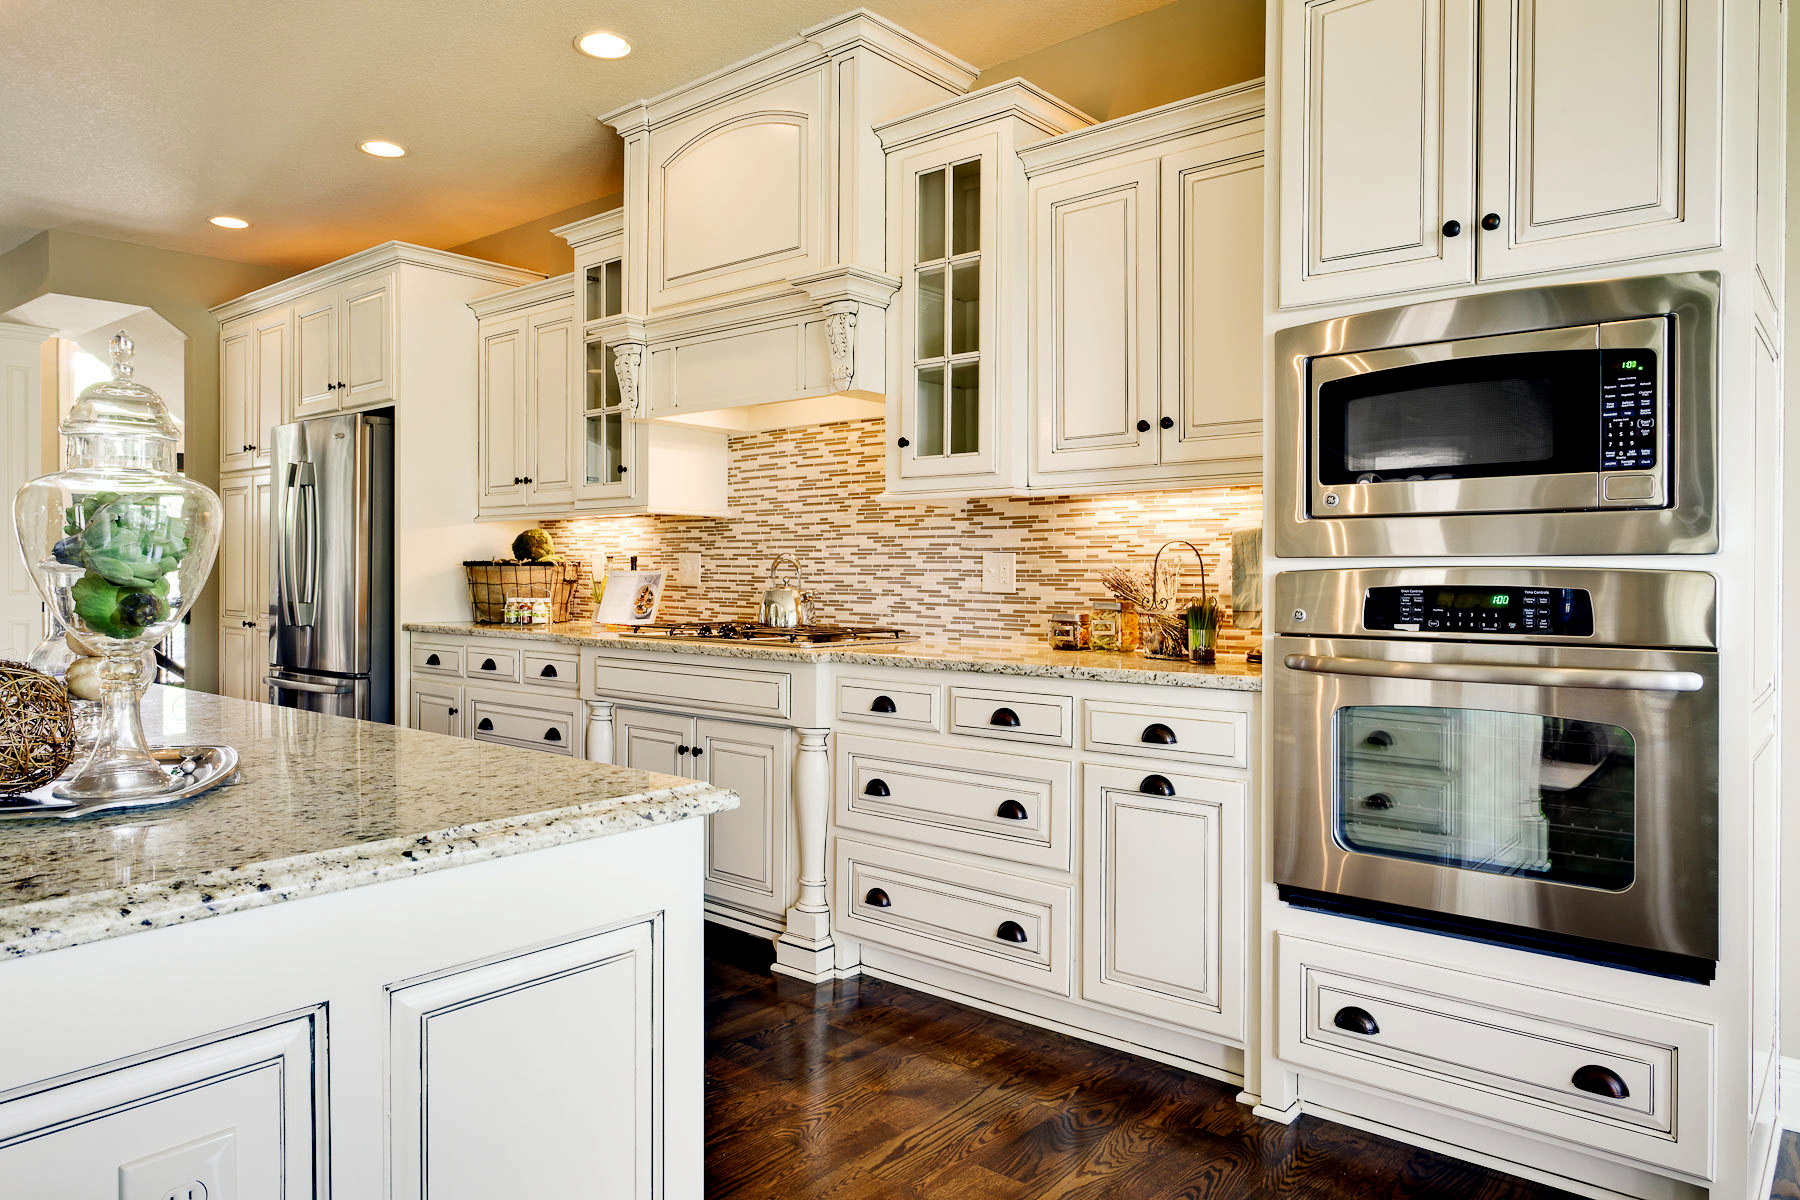 kraftmaid-kitchen-cabinets-review-simple-kraftmaid-kitchen.jpg